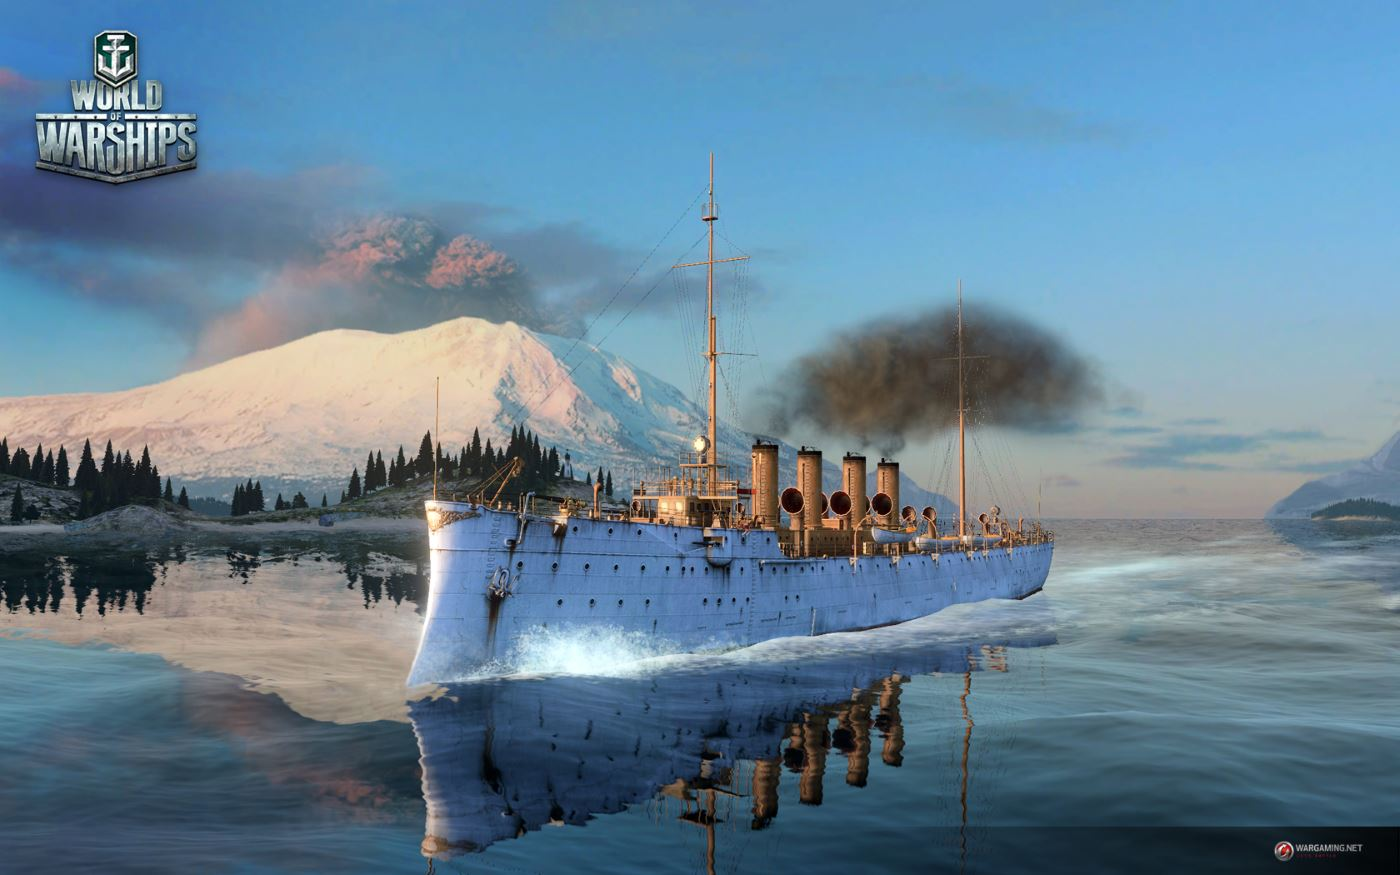 World of Warships: Stapellauf mit Trailer statt Champagner